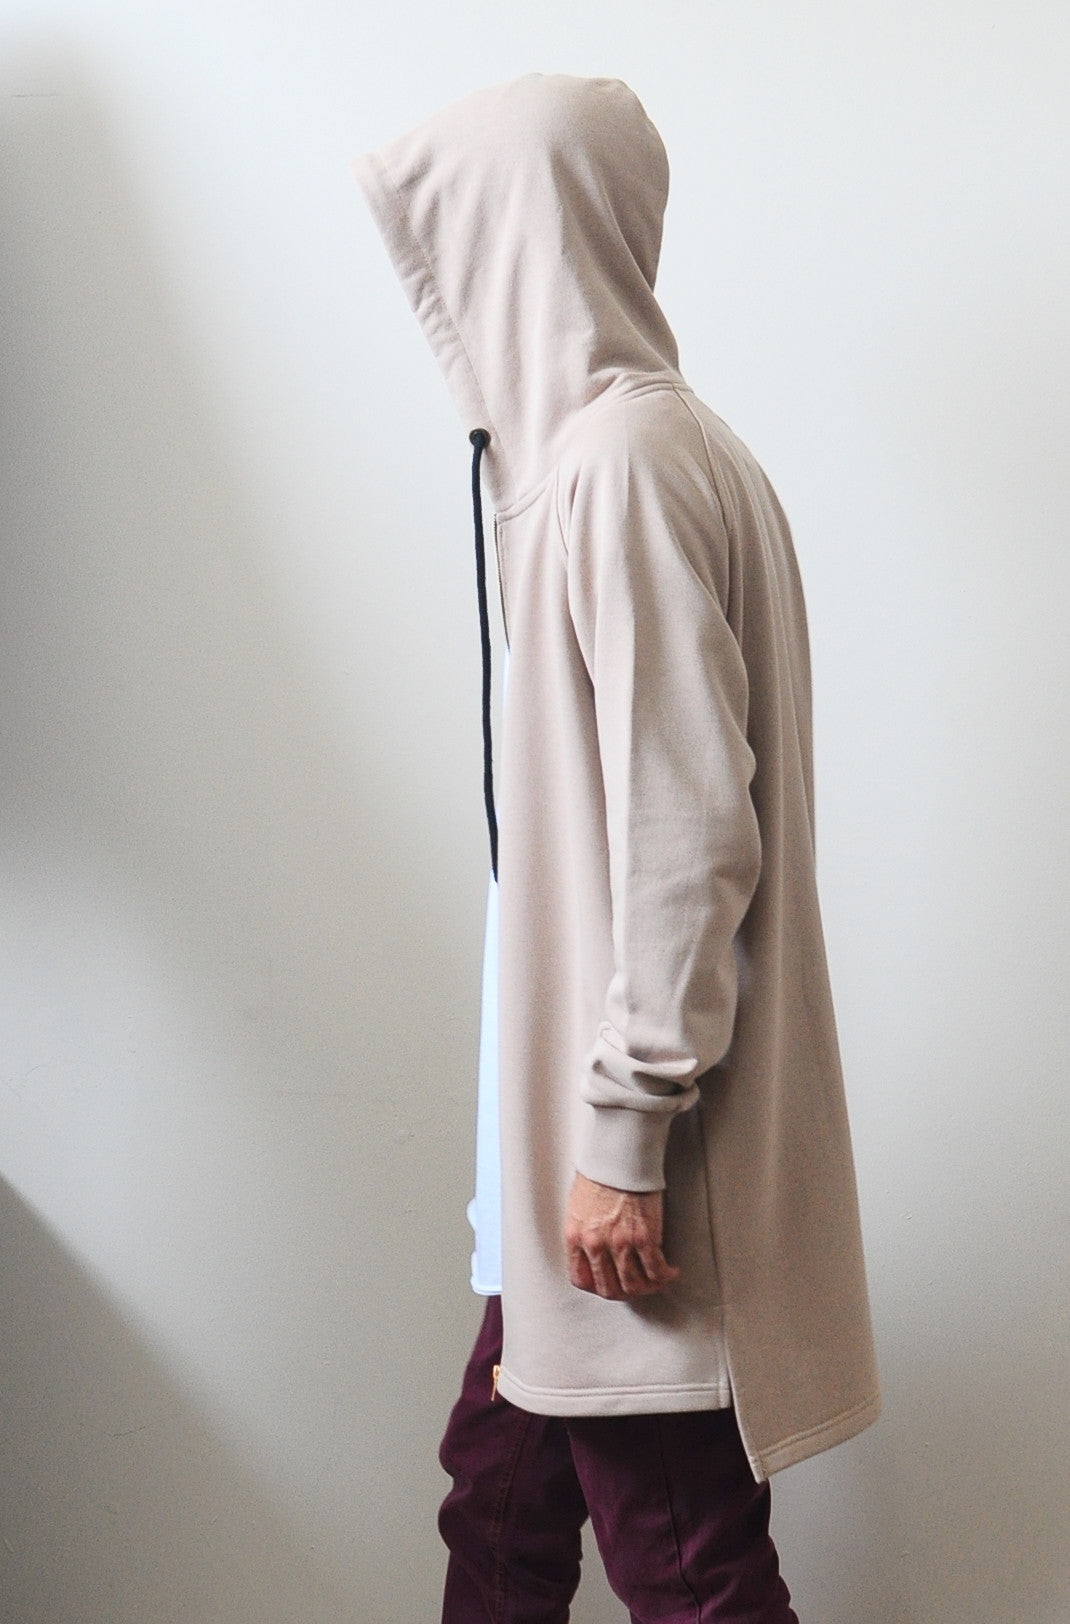 Sand Black Relaxed-fit Oversized Overlong Hooded Zip Up Sweatshirt